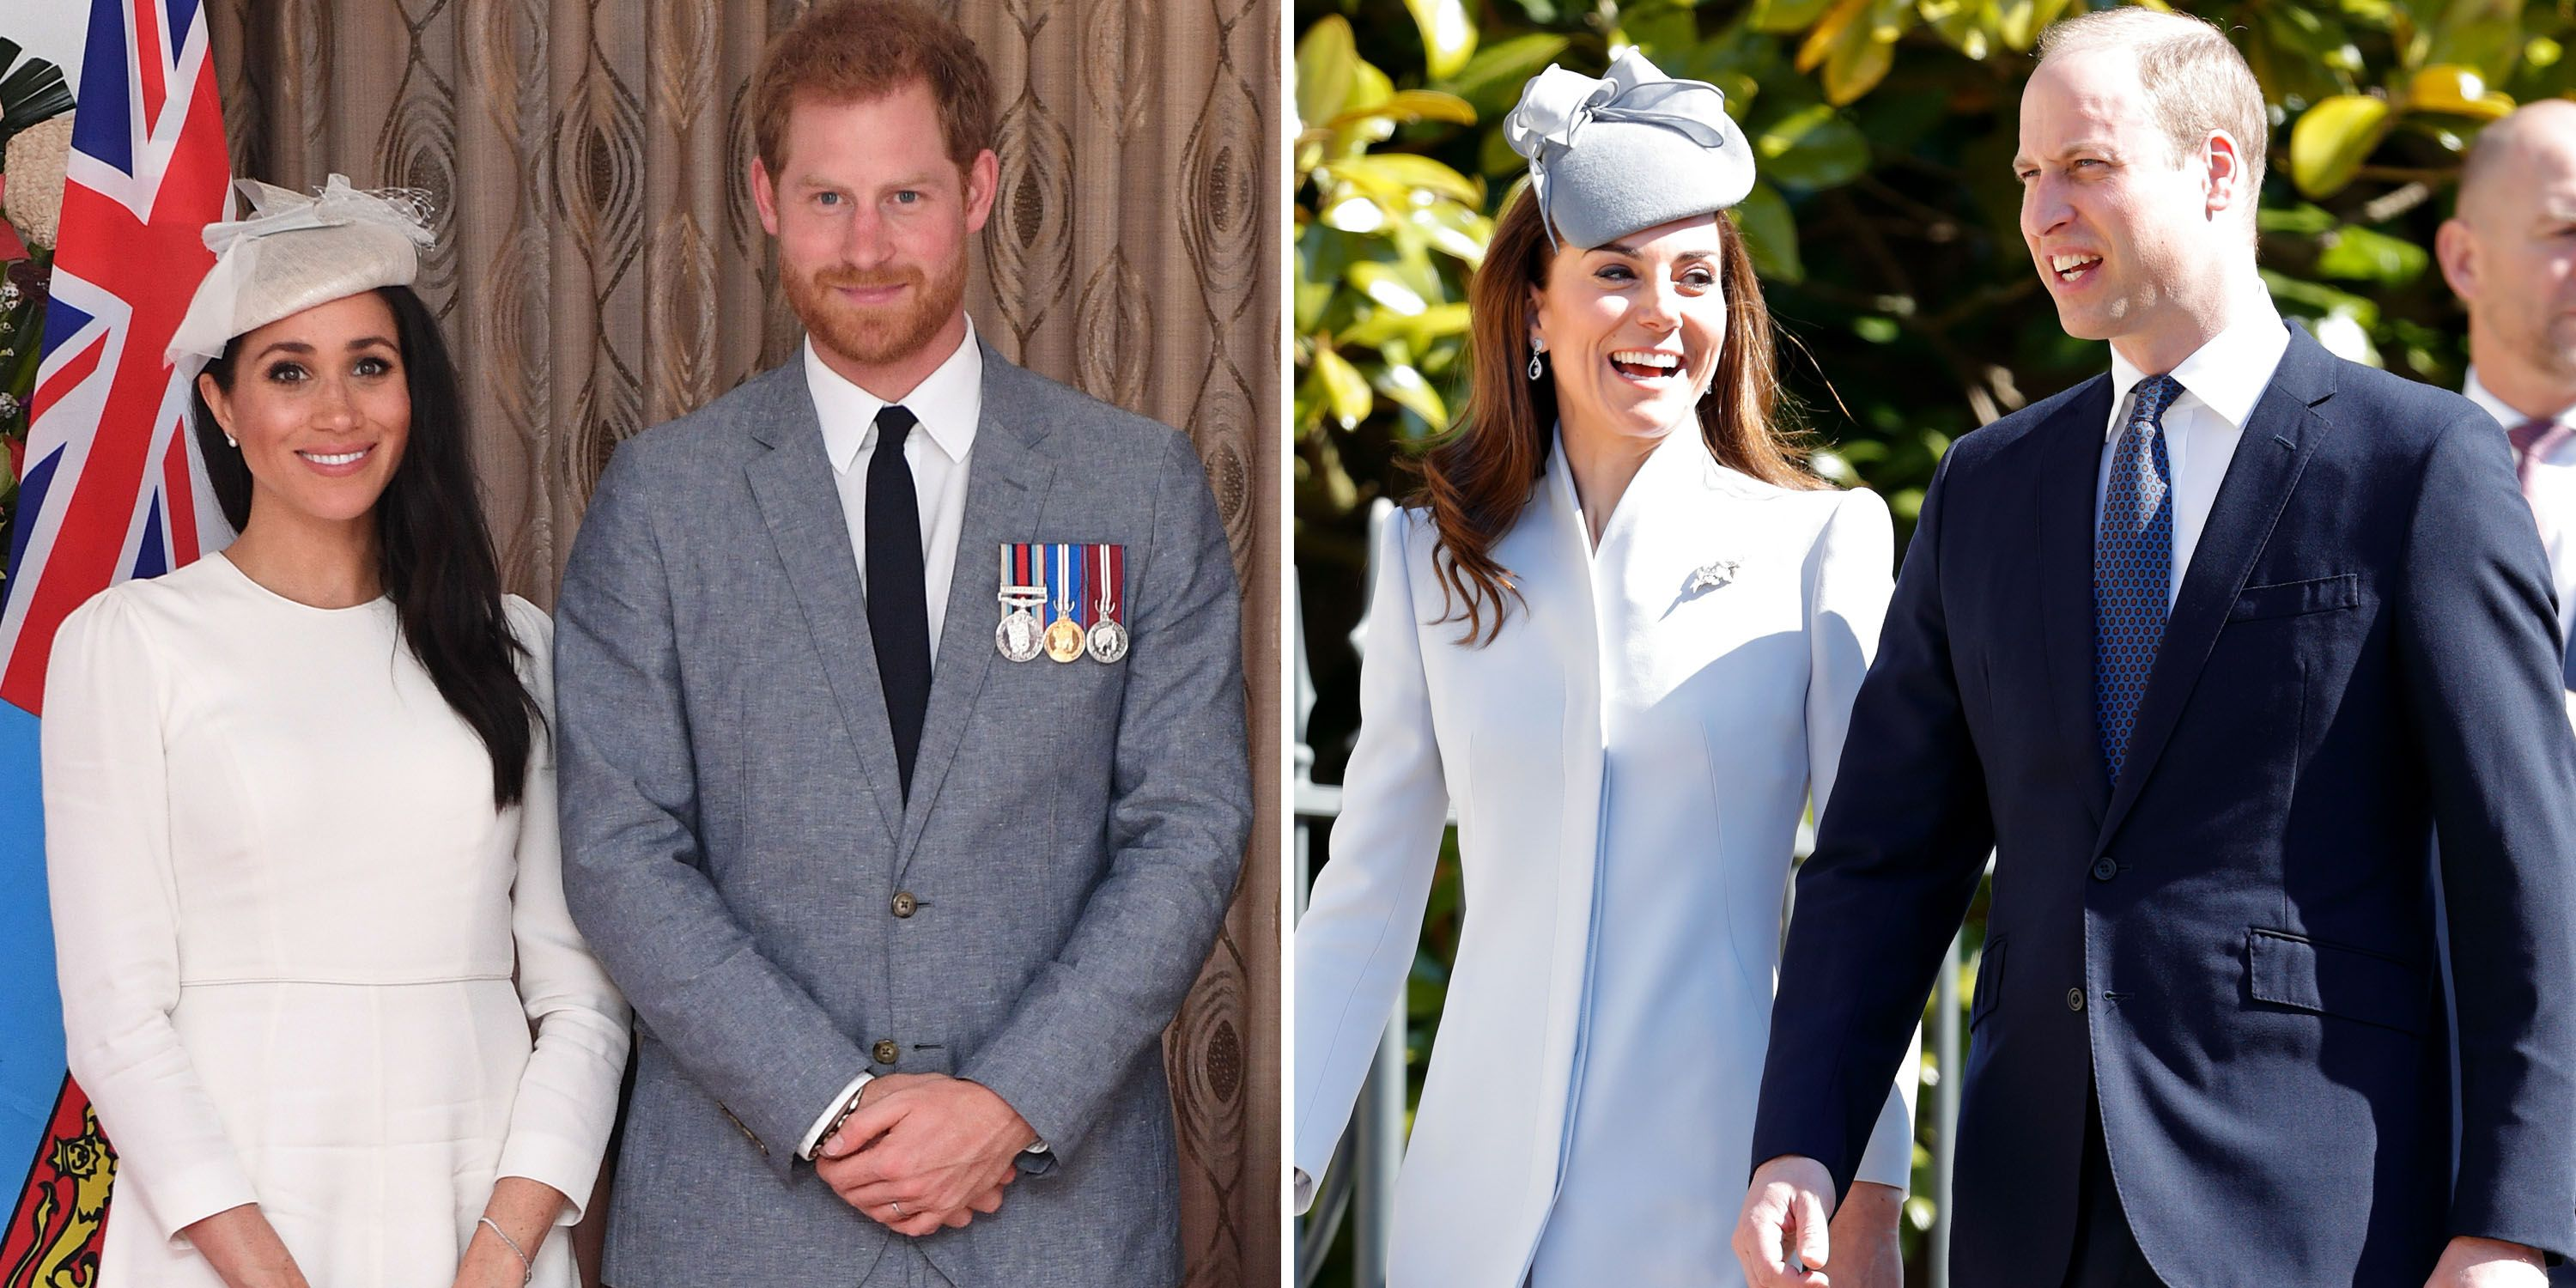 Prince William & Duchess Kate Have Visited Meghan at Frogmore Cottage